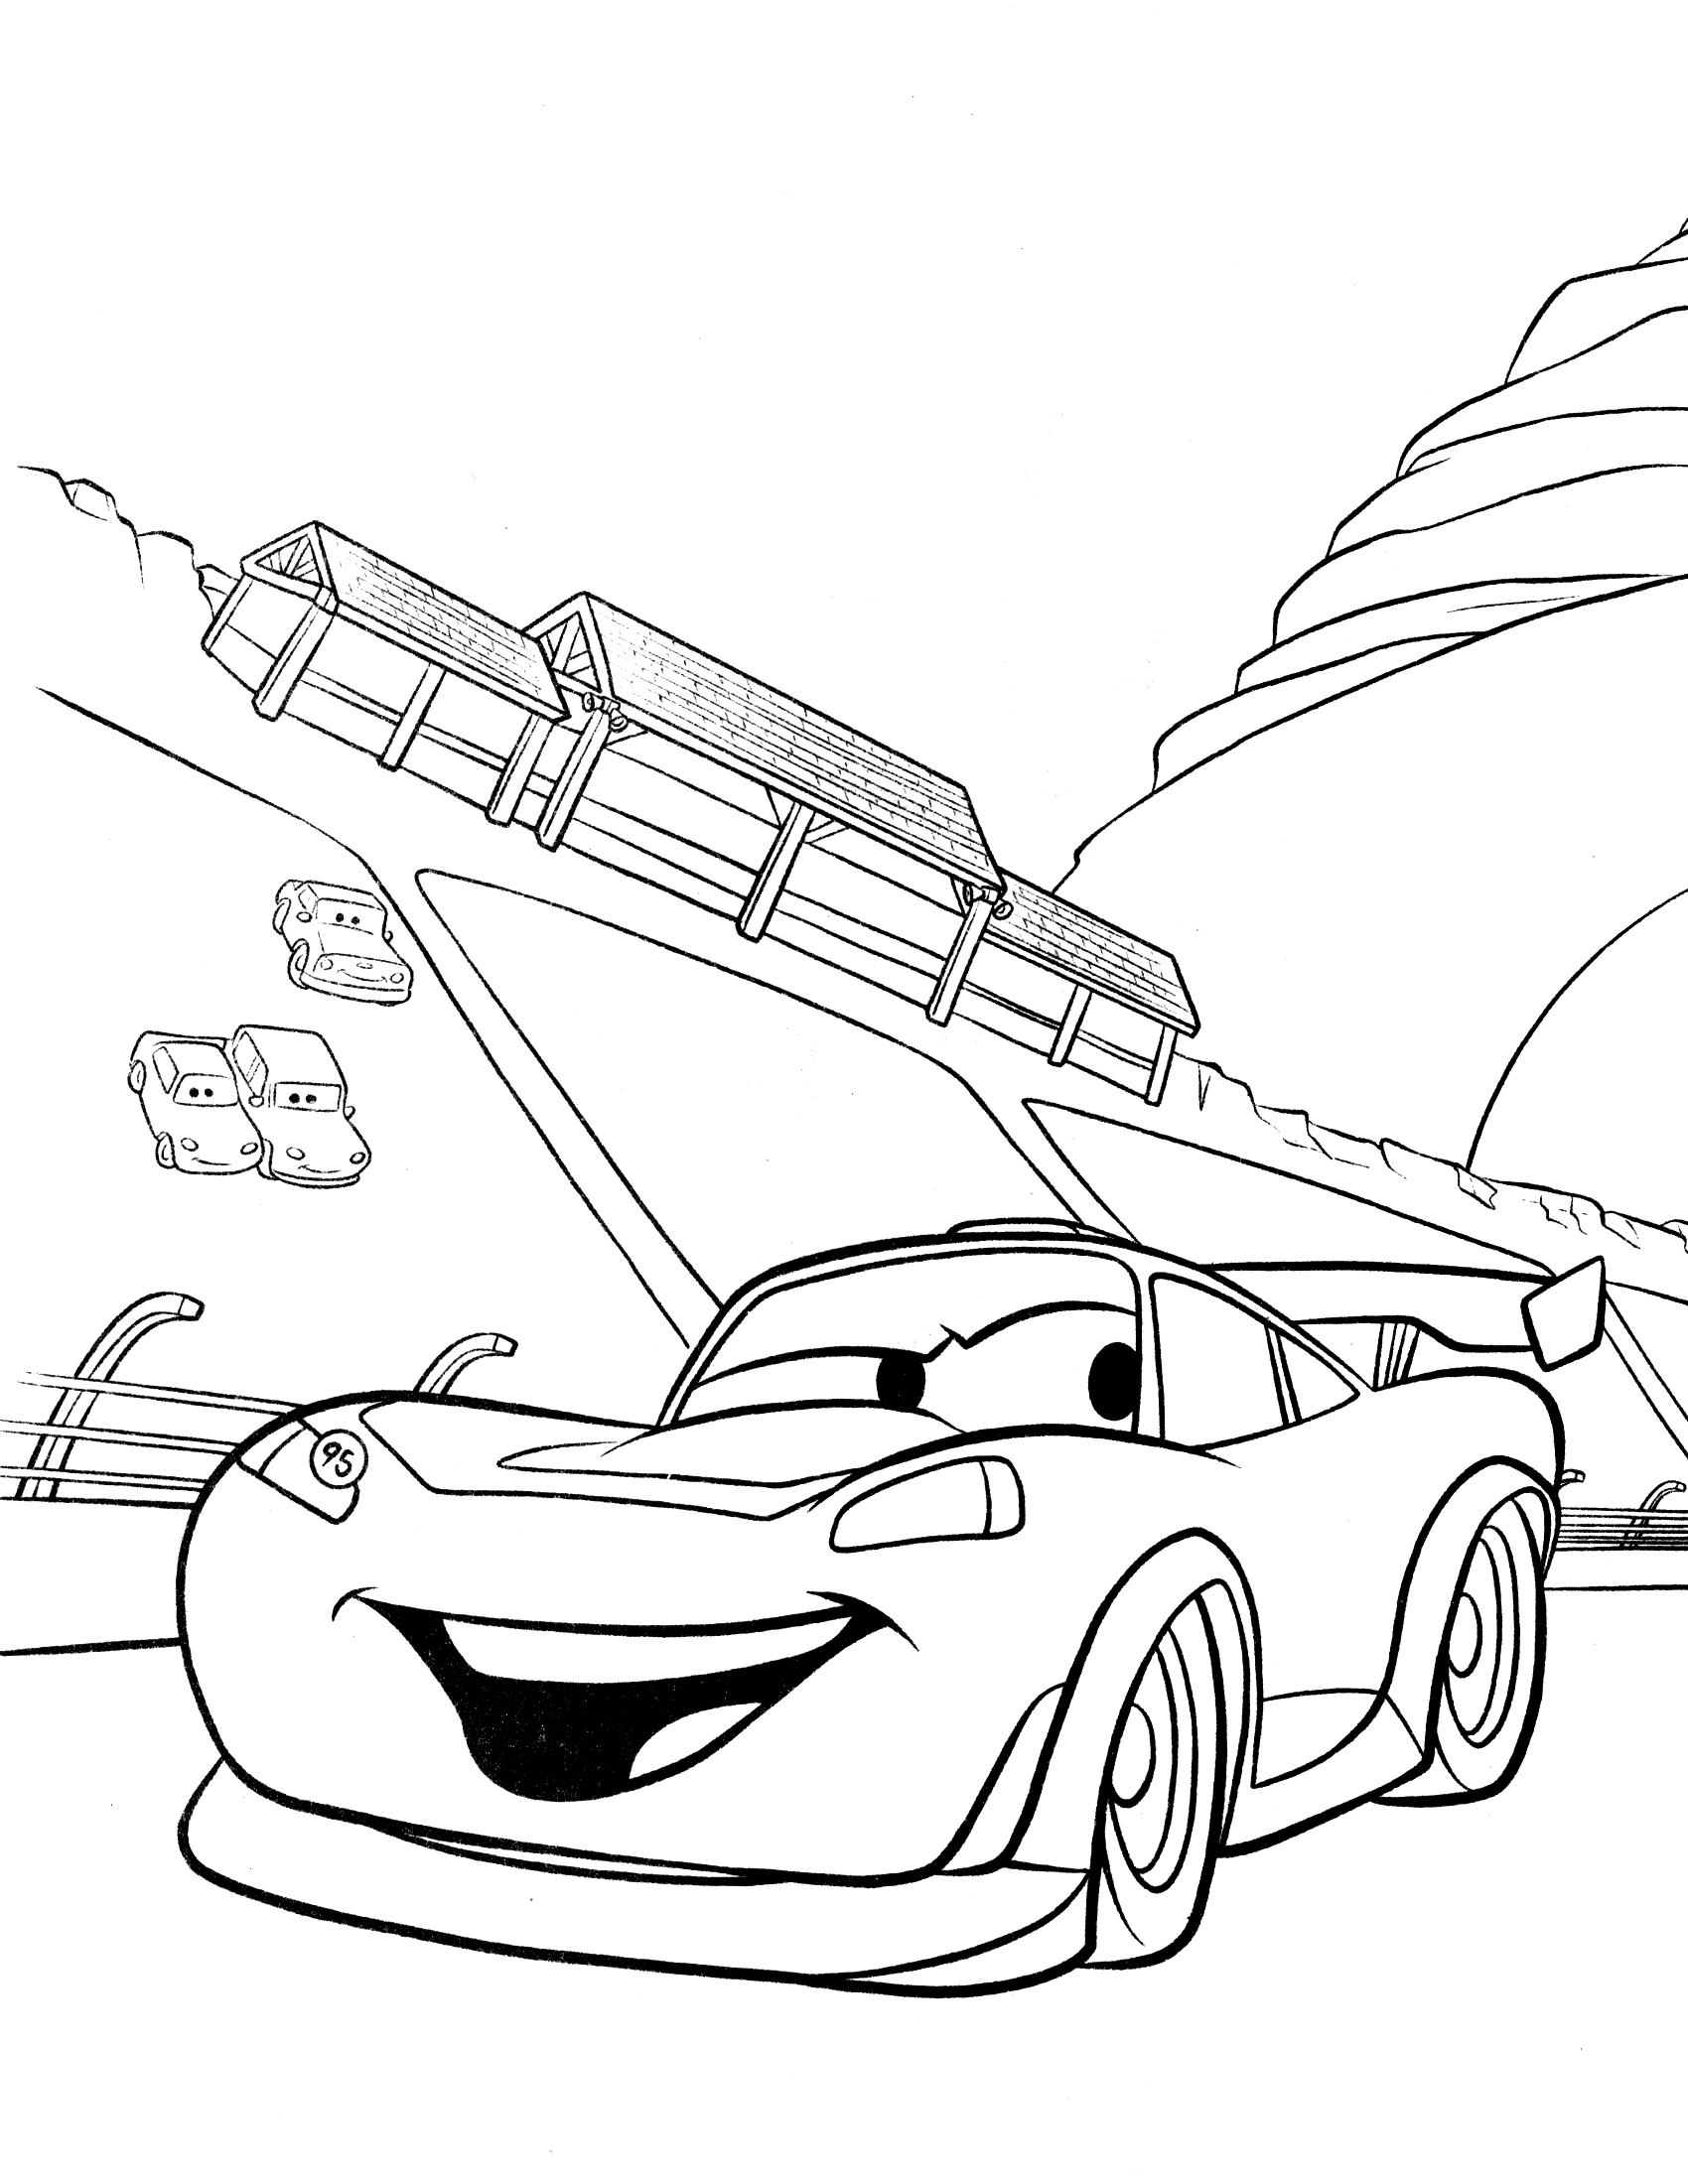 Car Drawing Simple at GetDrawings.com | Free for personal use Car ...